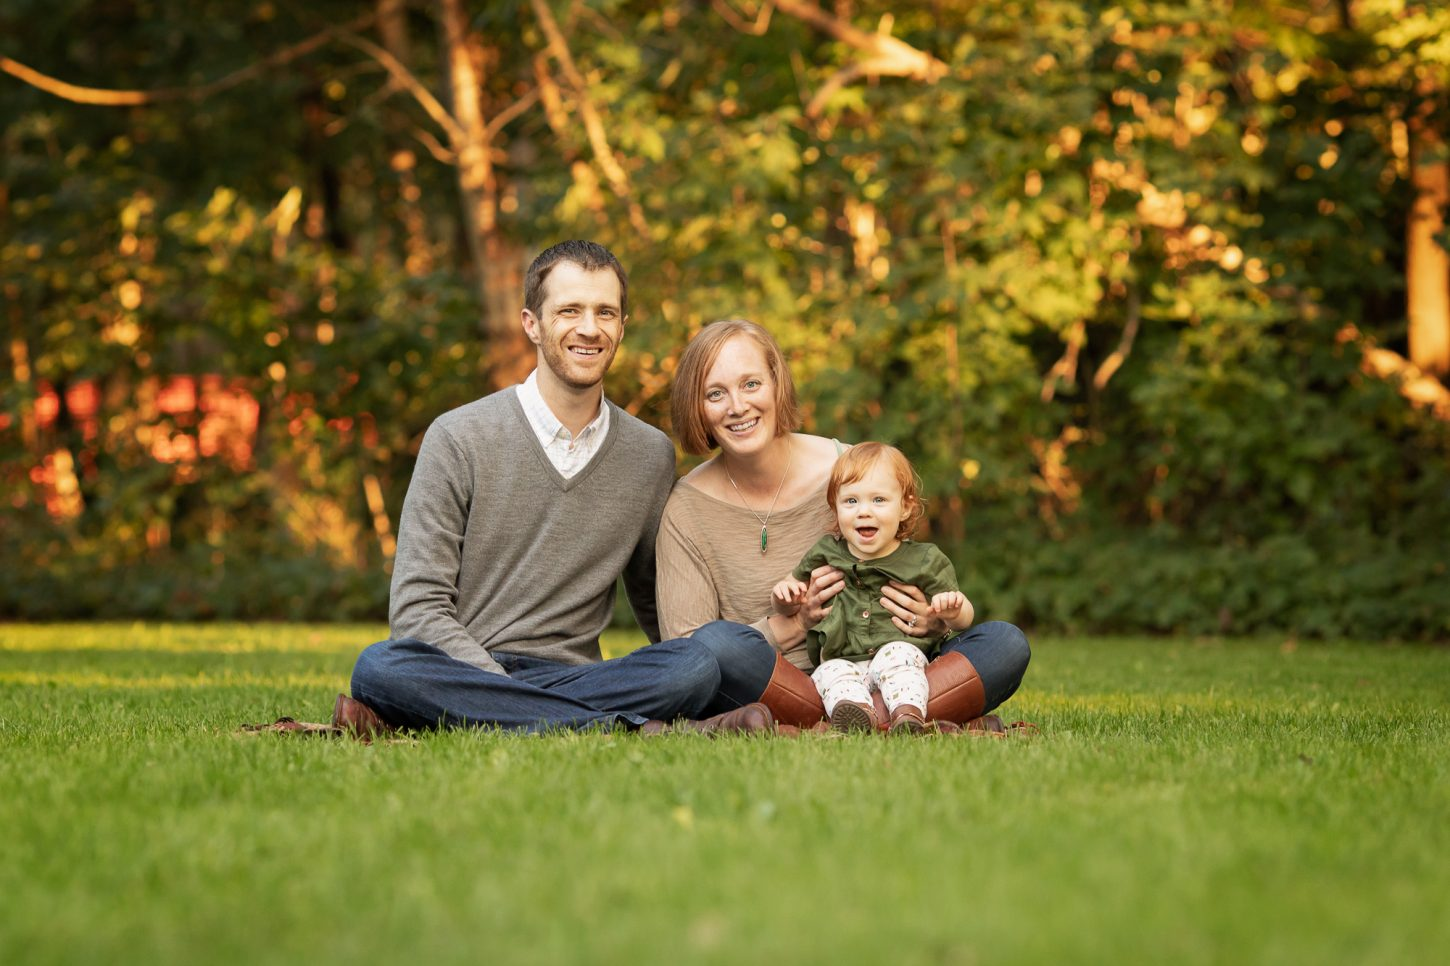 ann arbor family portrait photographer